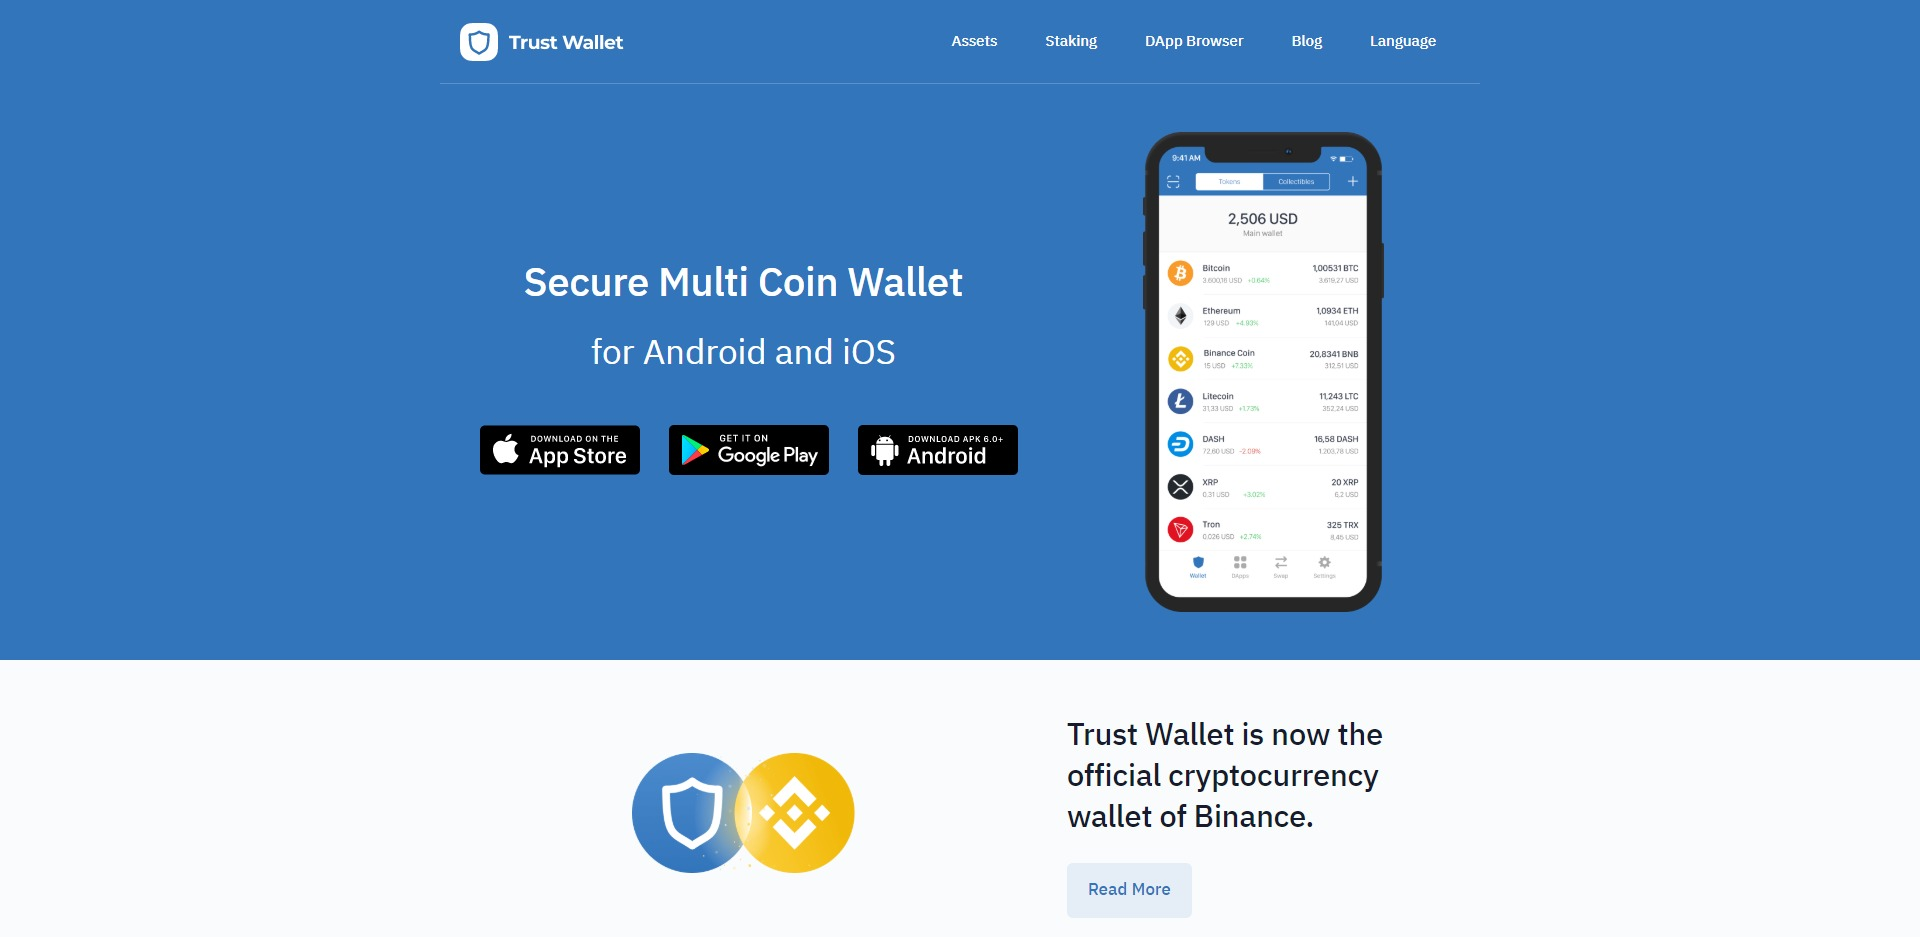 Trust Wallet Website